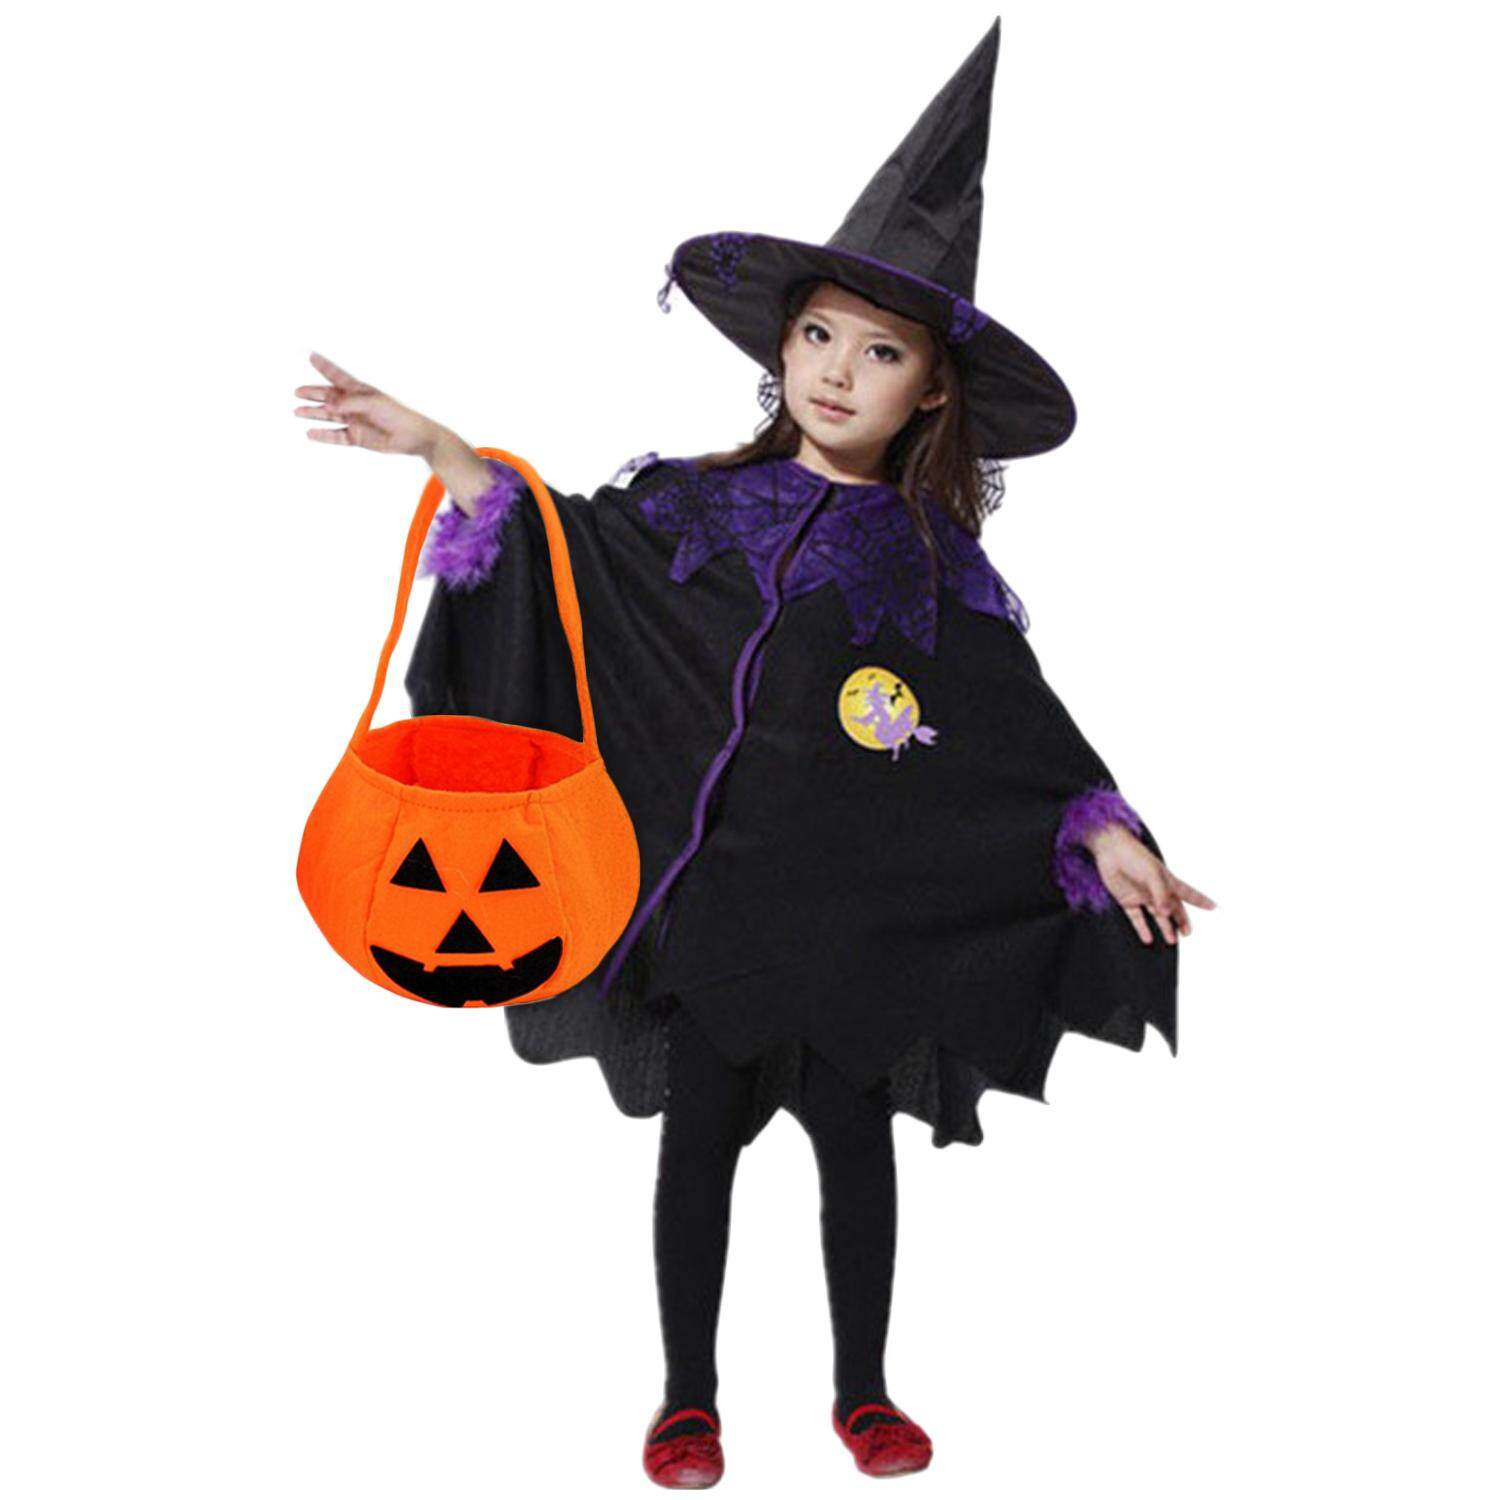 Mavis Halloween Costume Toddler.Kid Boys Girls Witch Costumes With Pumpkin Bag Cloak Cape Hat For Halloween Cosplay Role Play Stage Performance